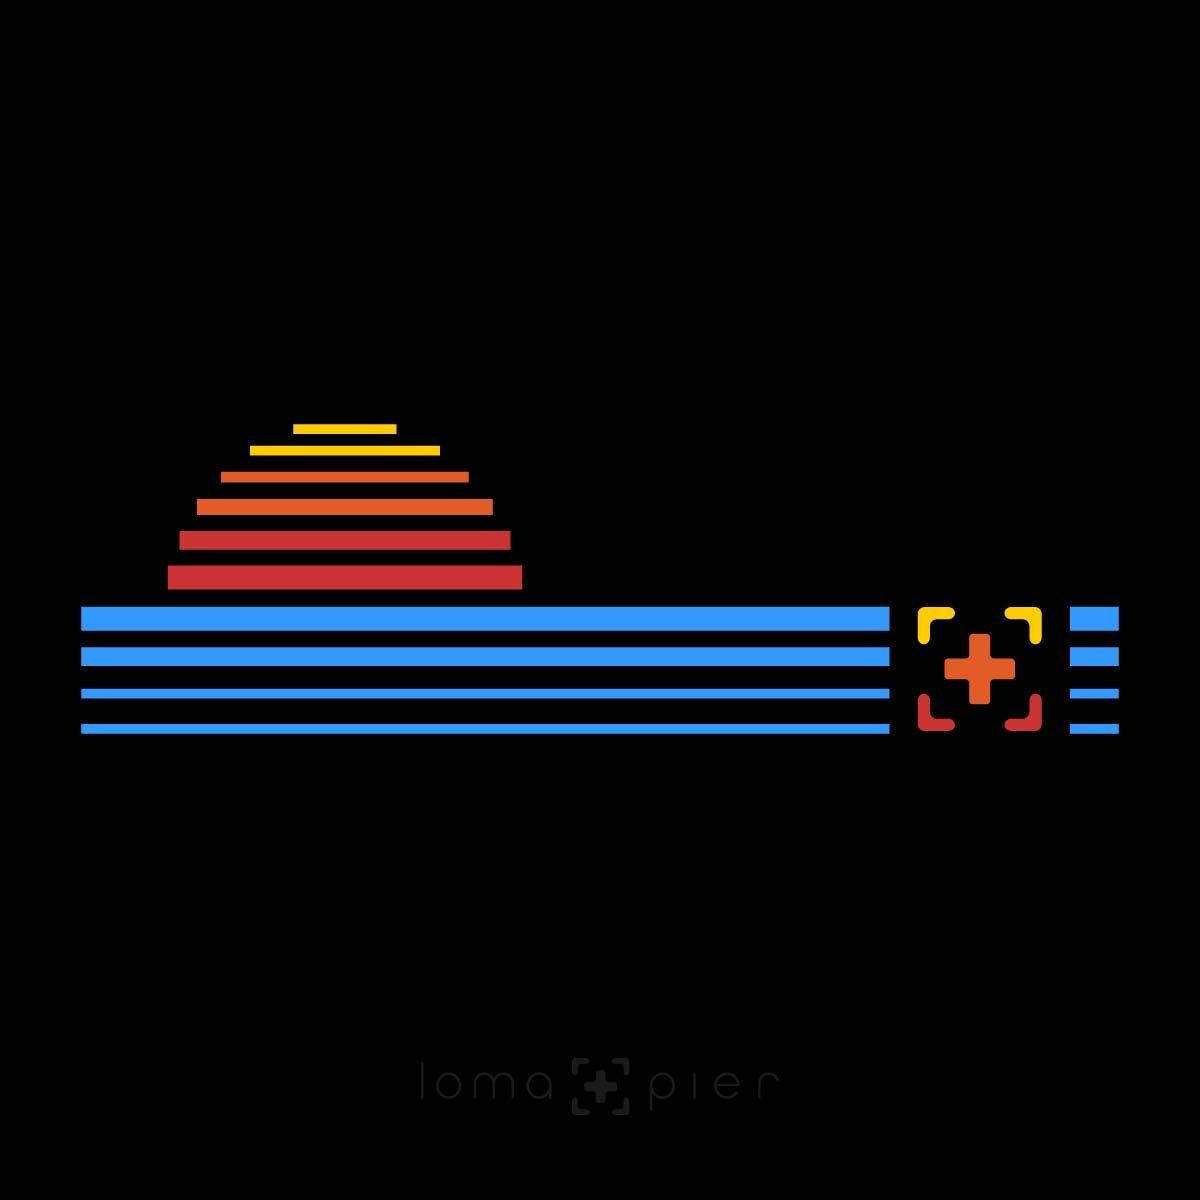 DIGITAL SUNSET icon design by loma+pier hat store